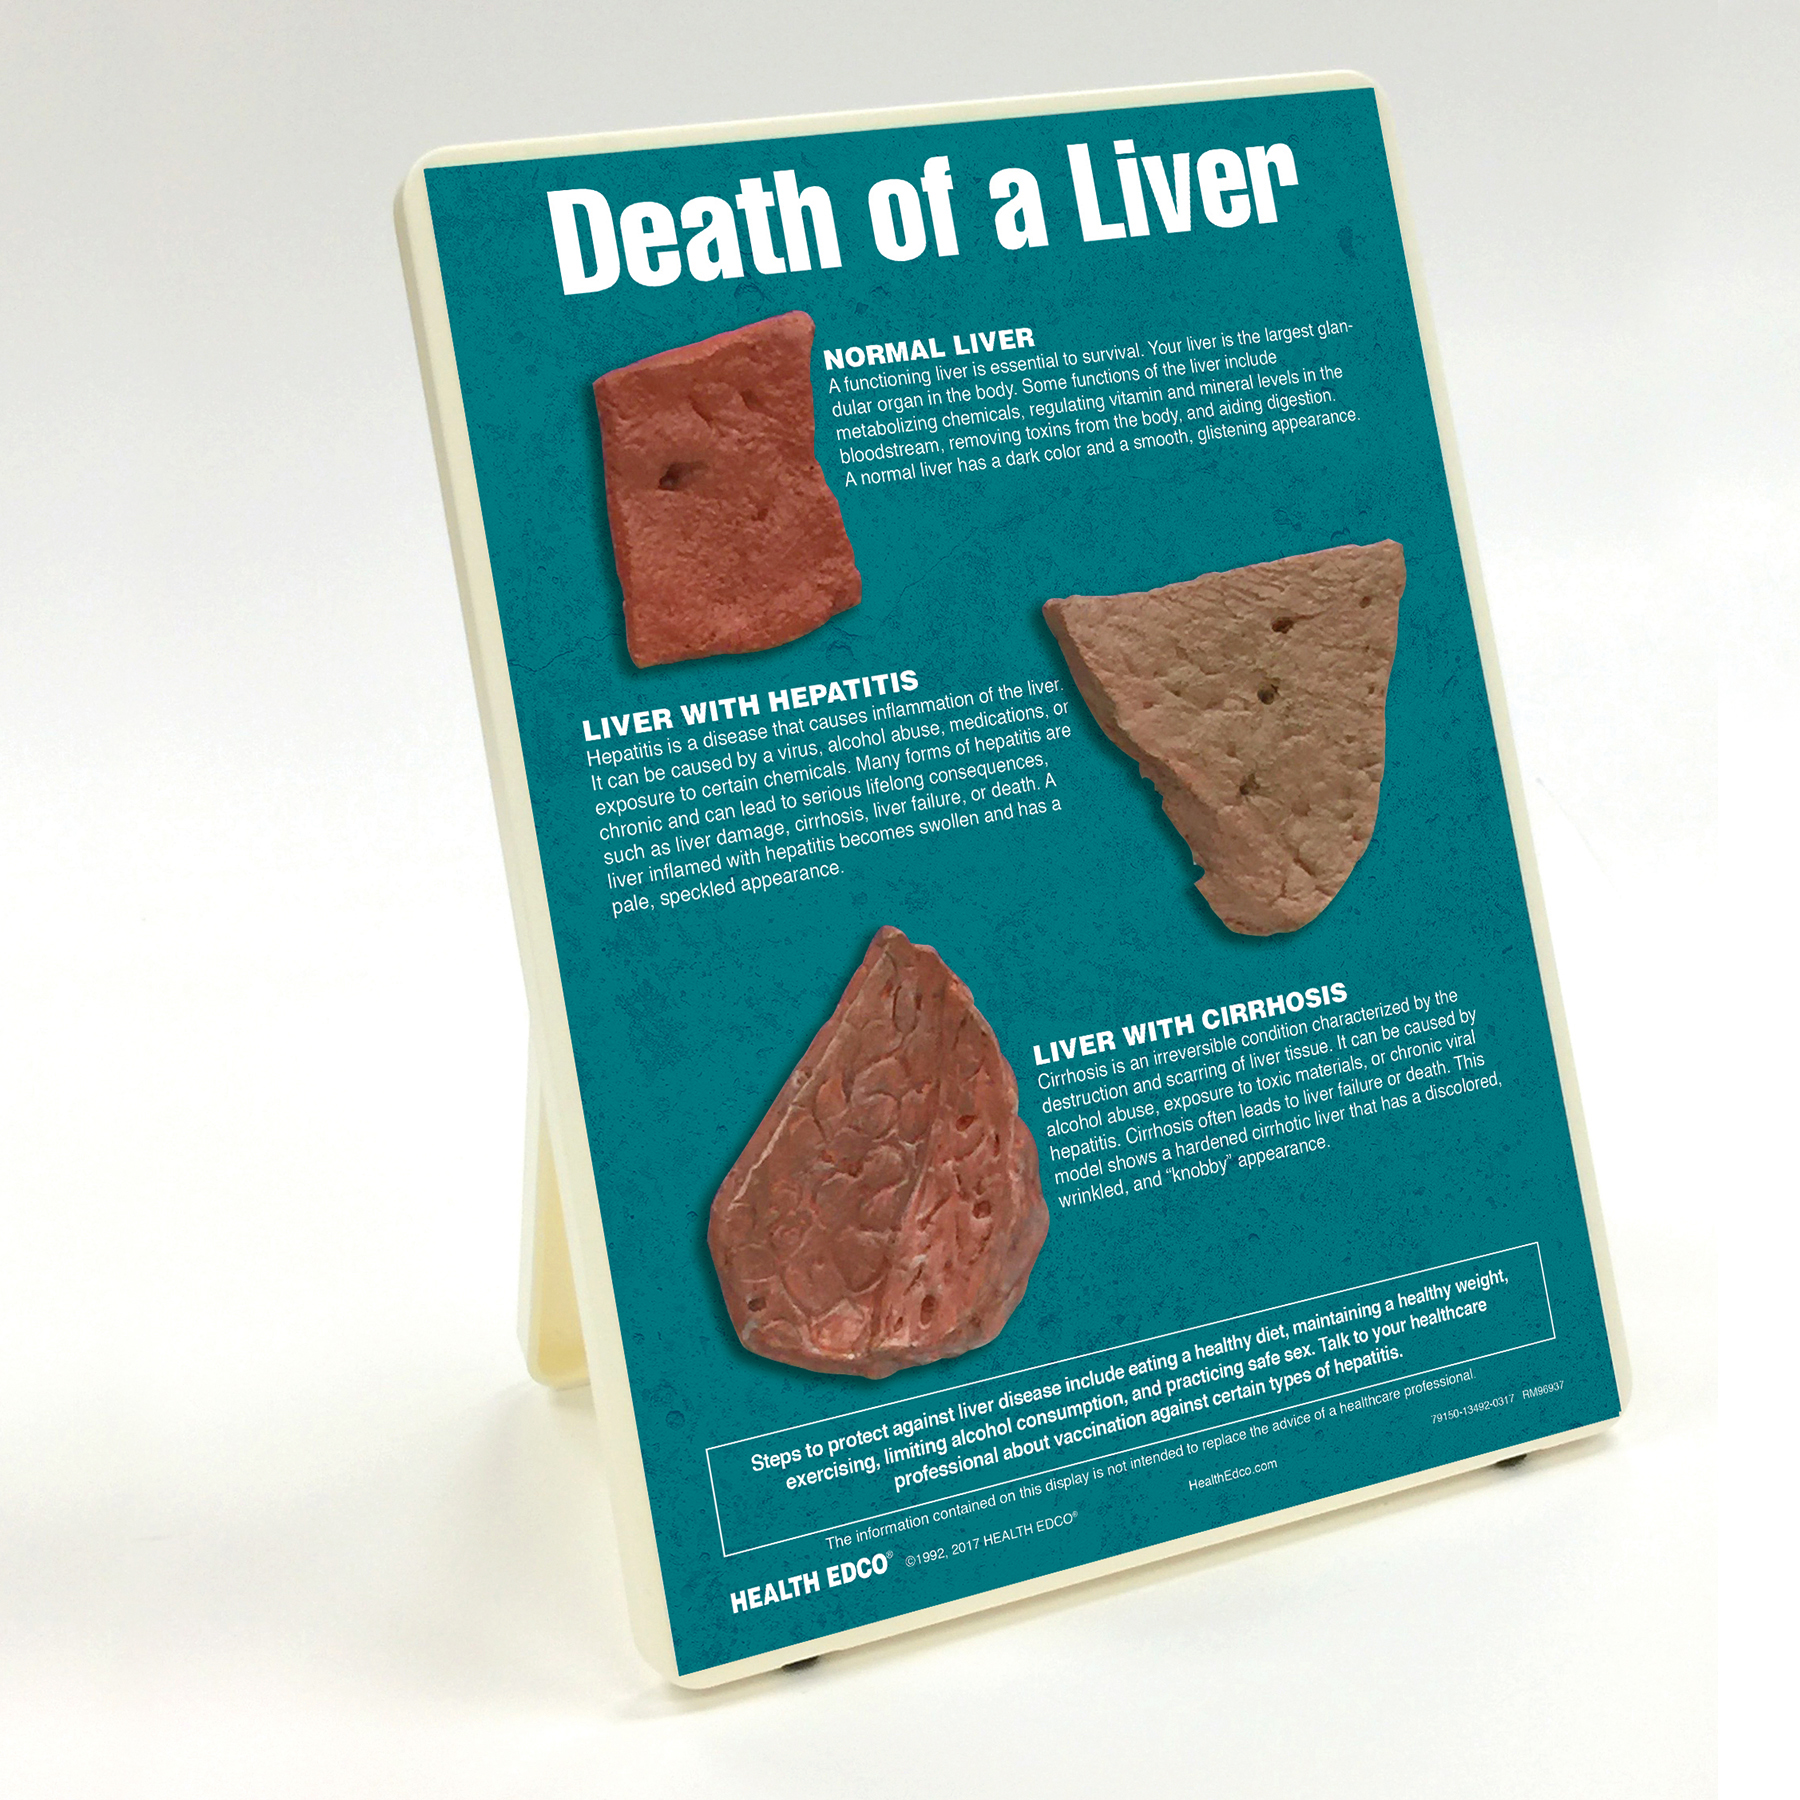 Death of a Liver Easel Display with models of a healthy, hepatic, and cirrhotic liver